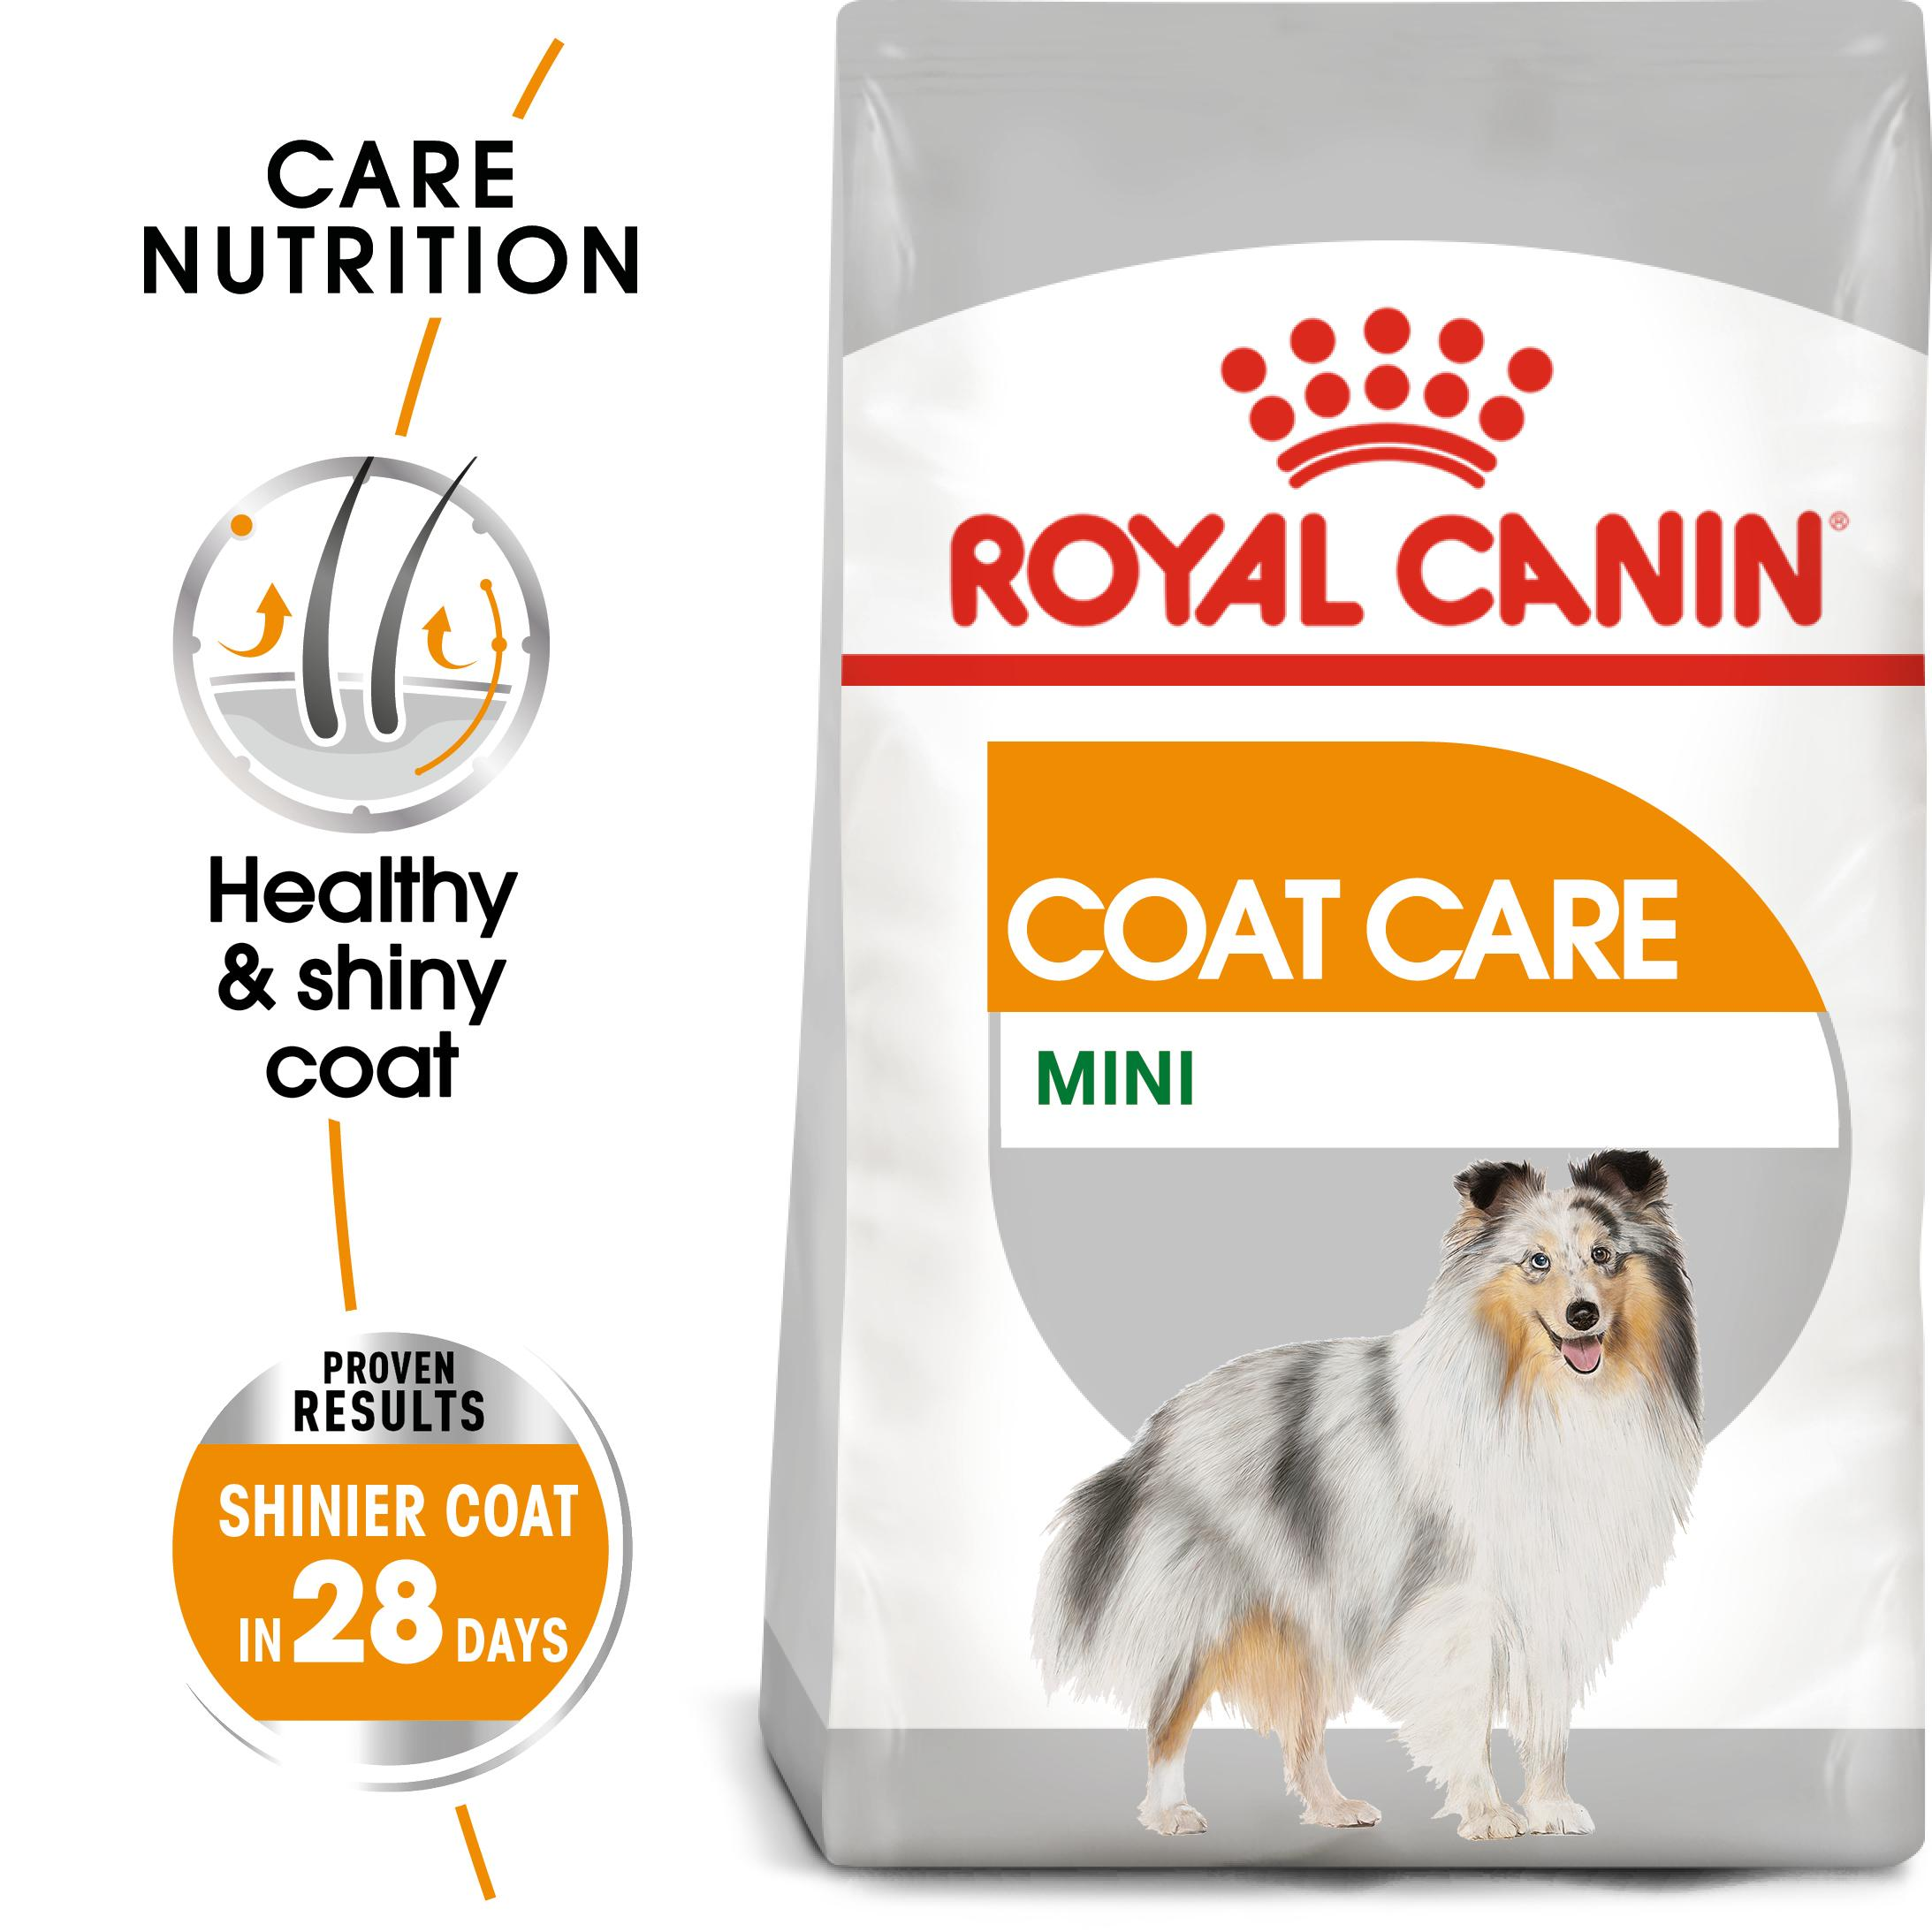 royal canin mini coat care dry food